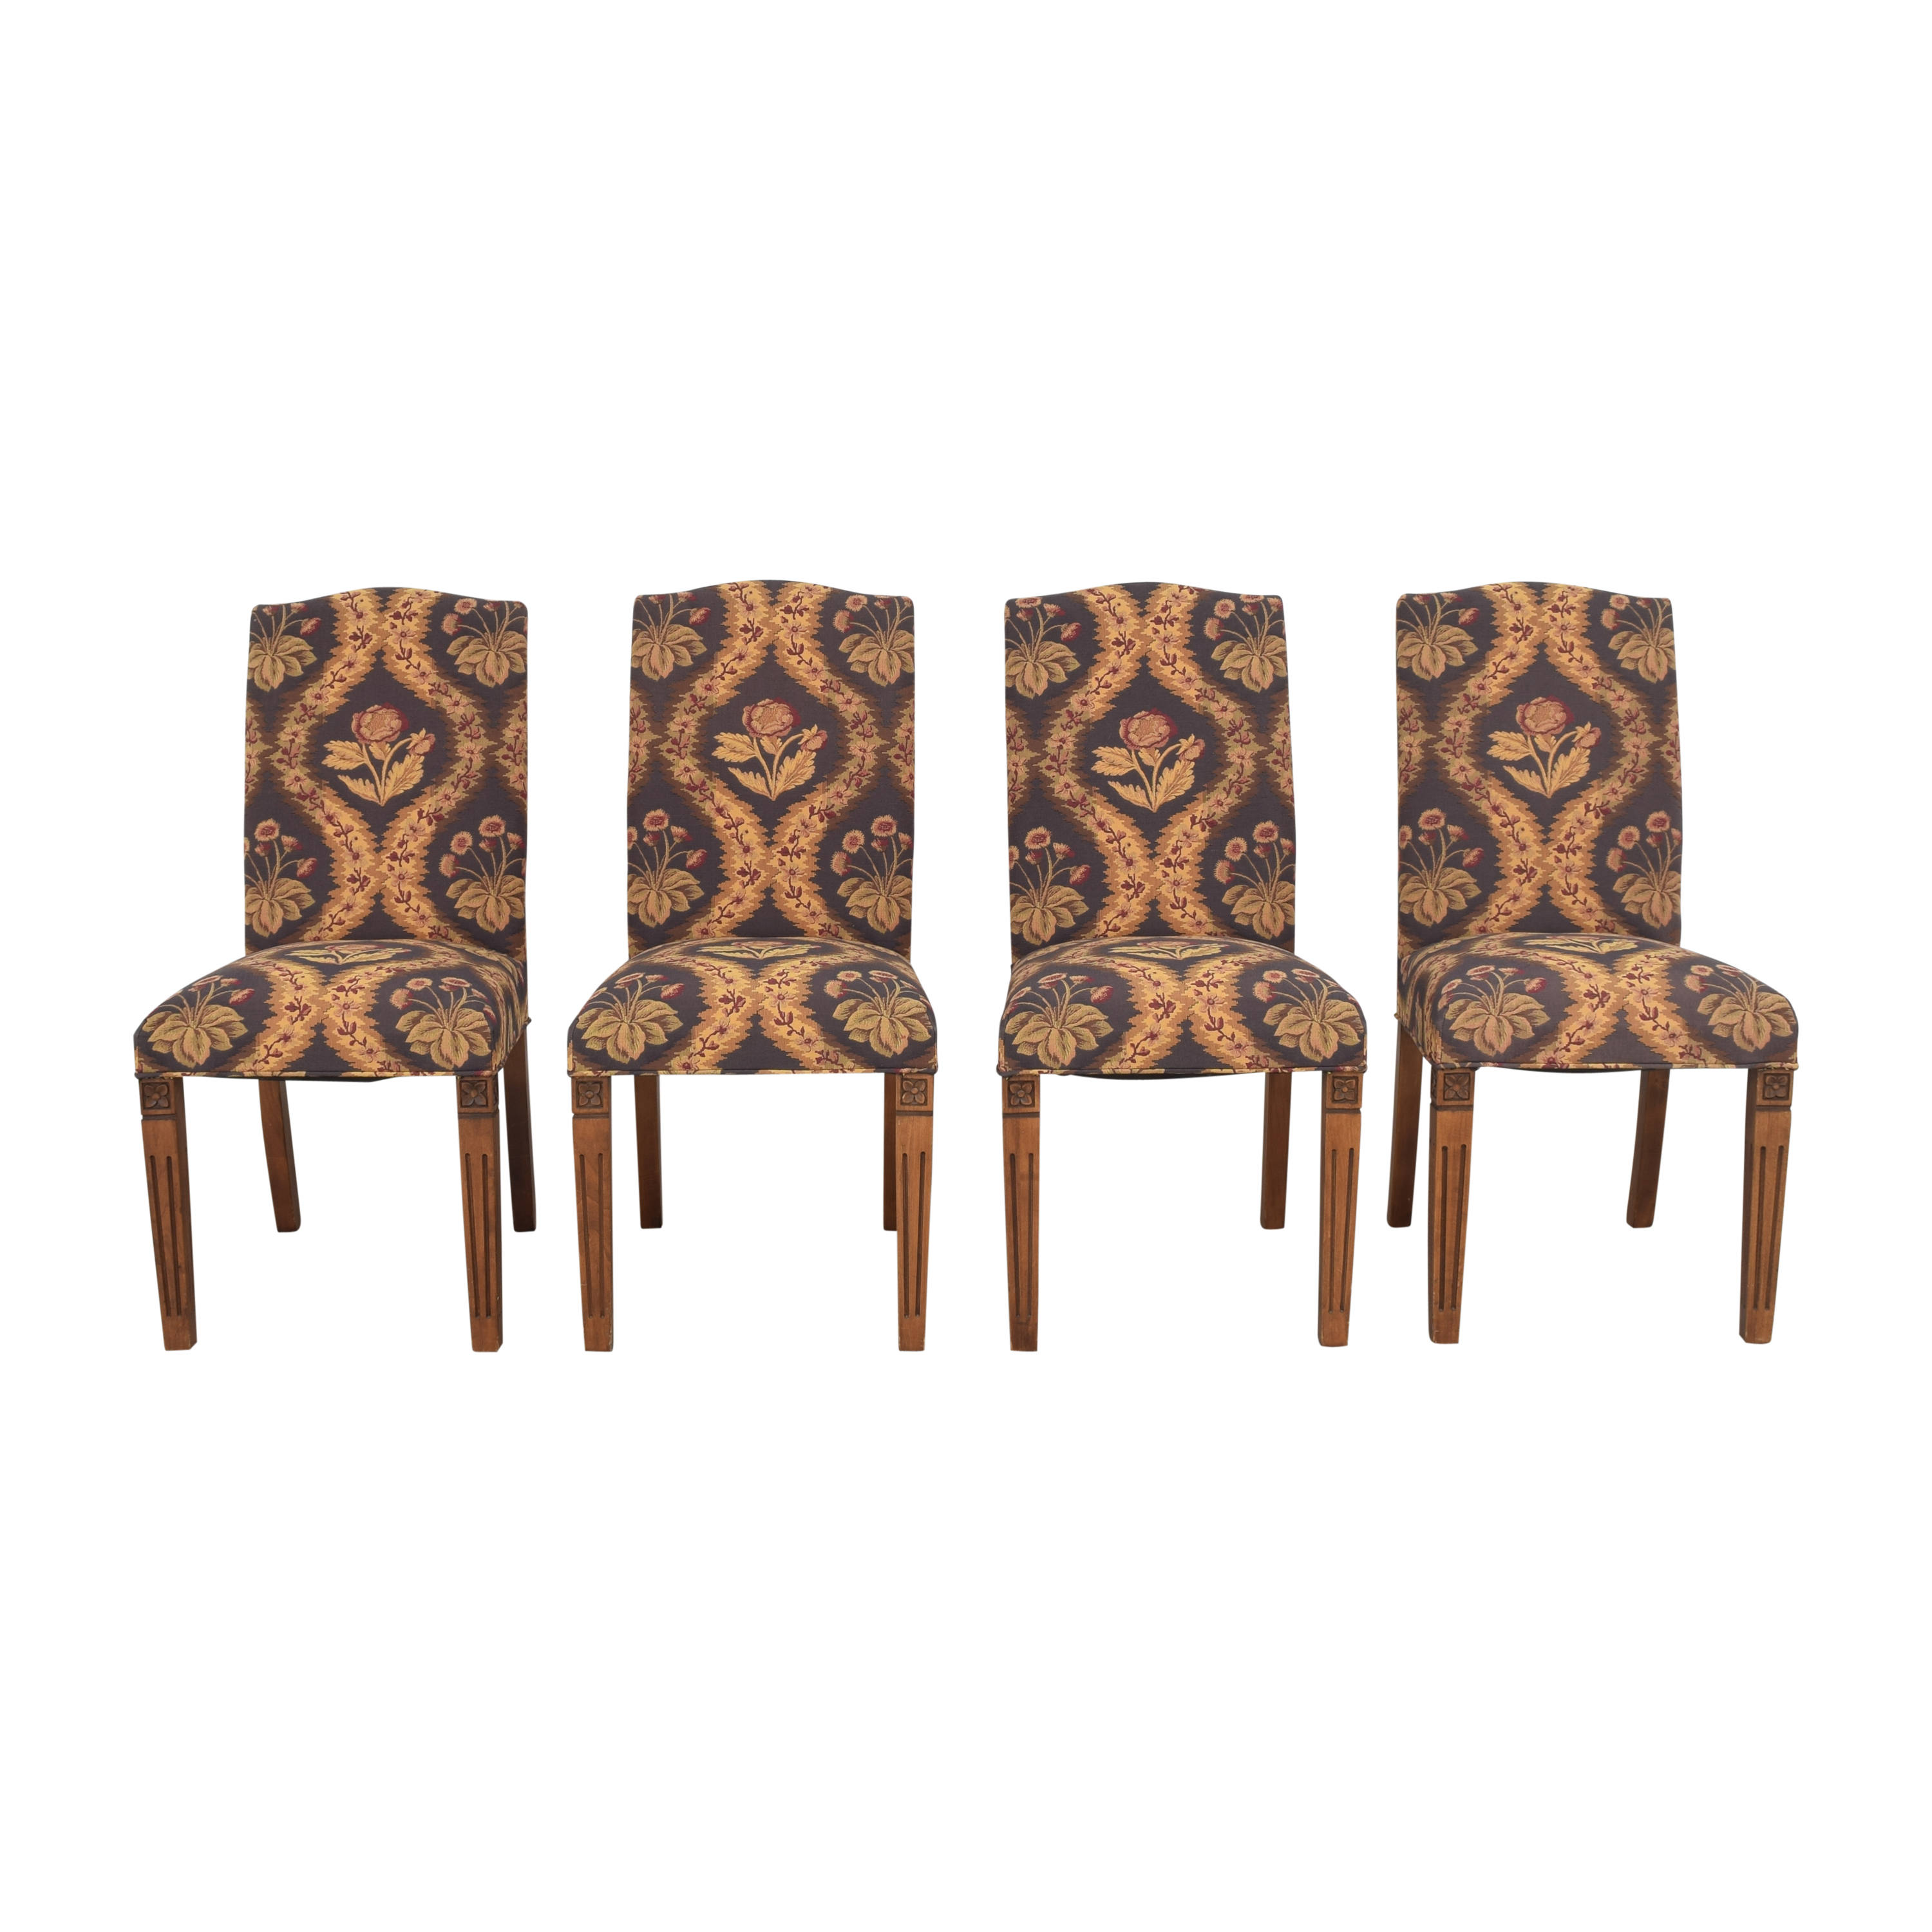 Vintage-Style Tapestry Chairs price